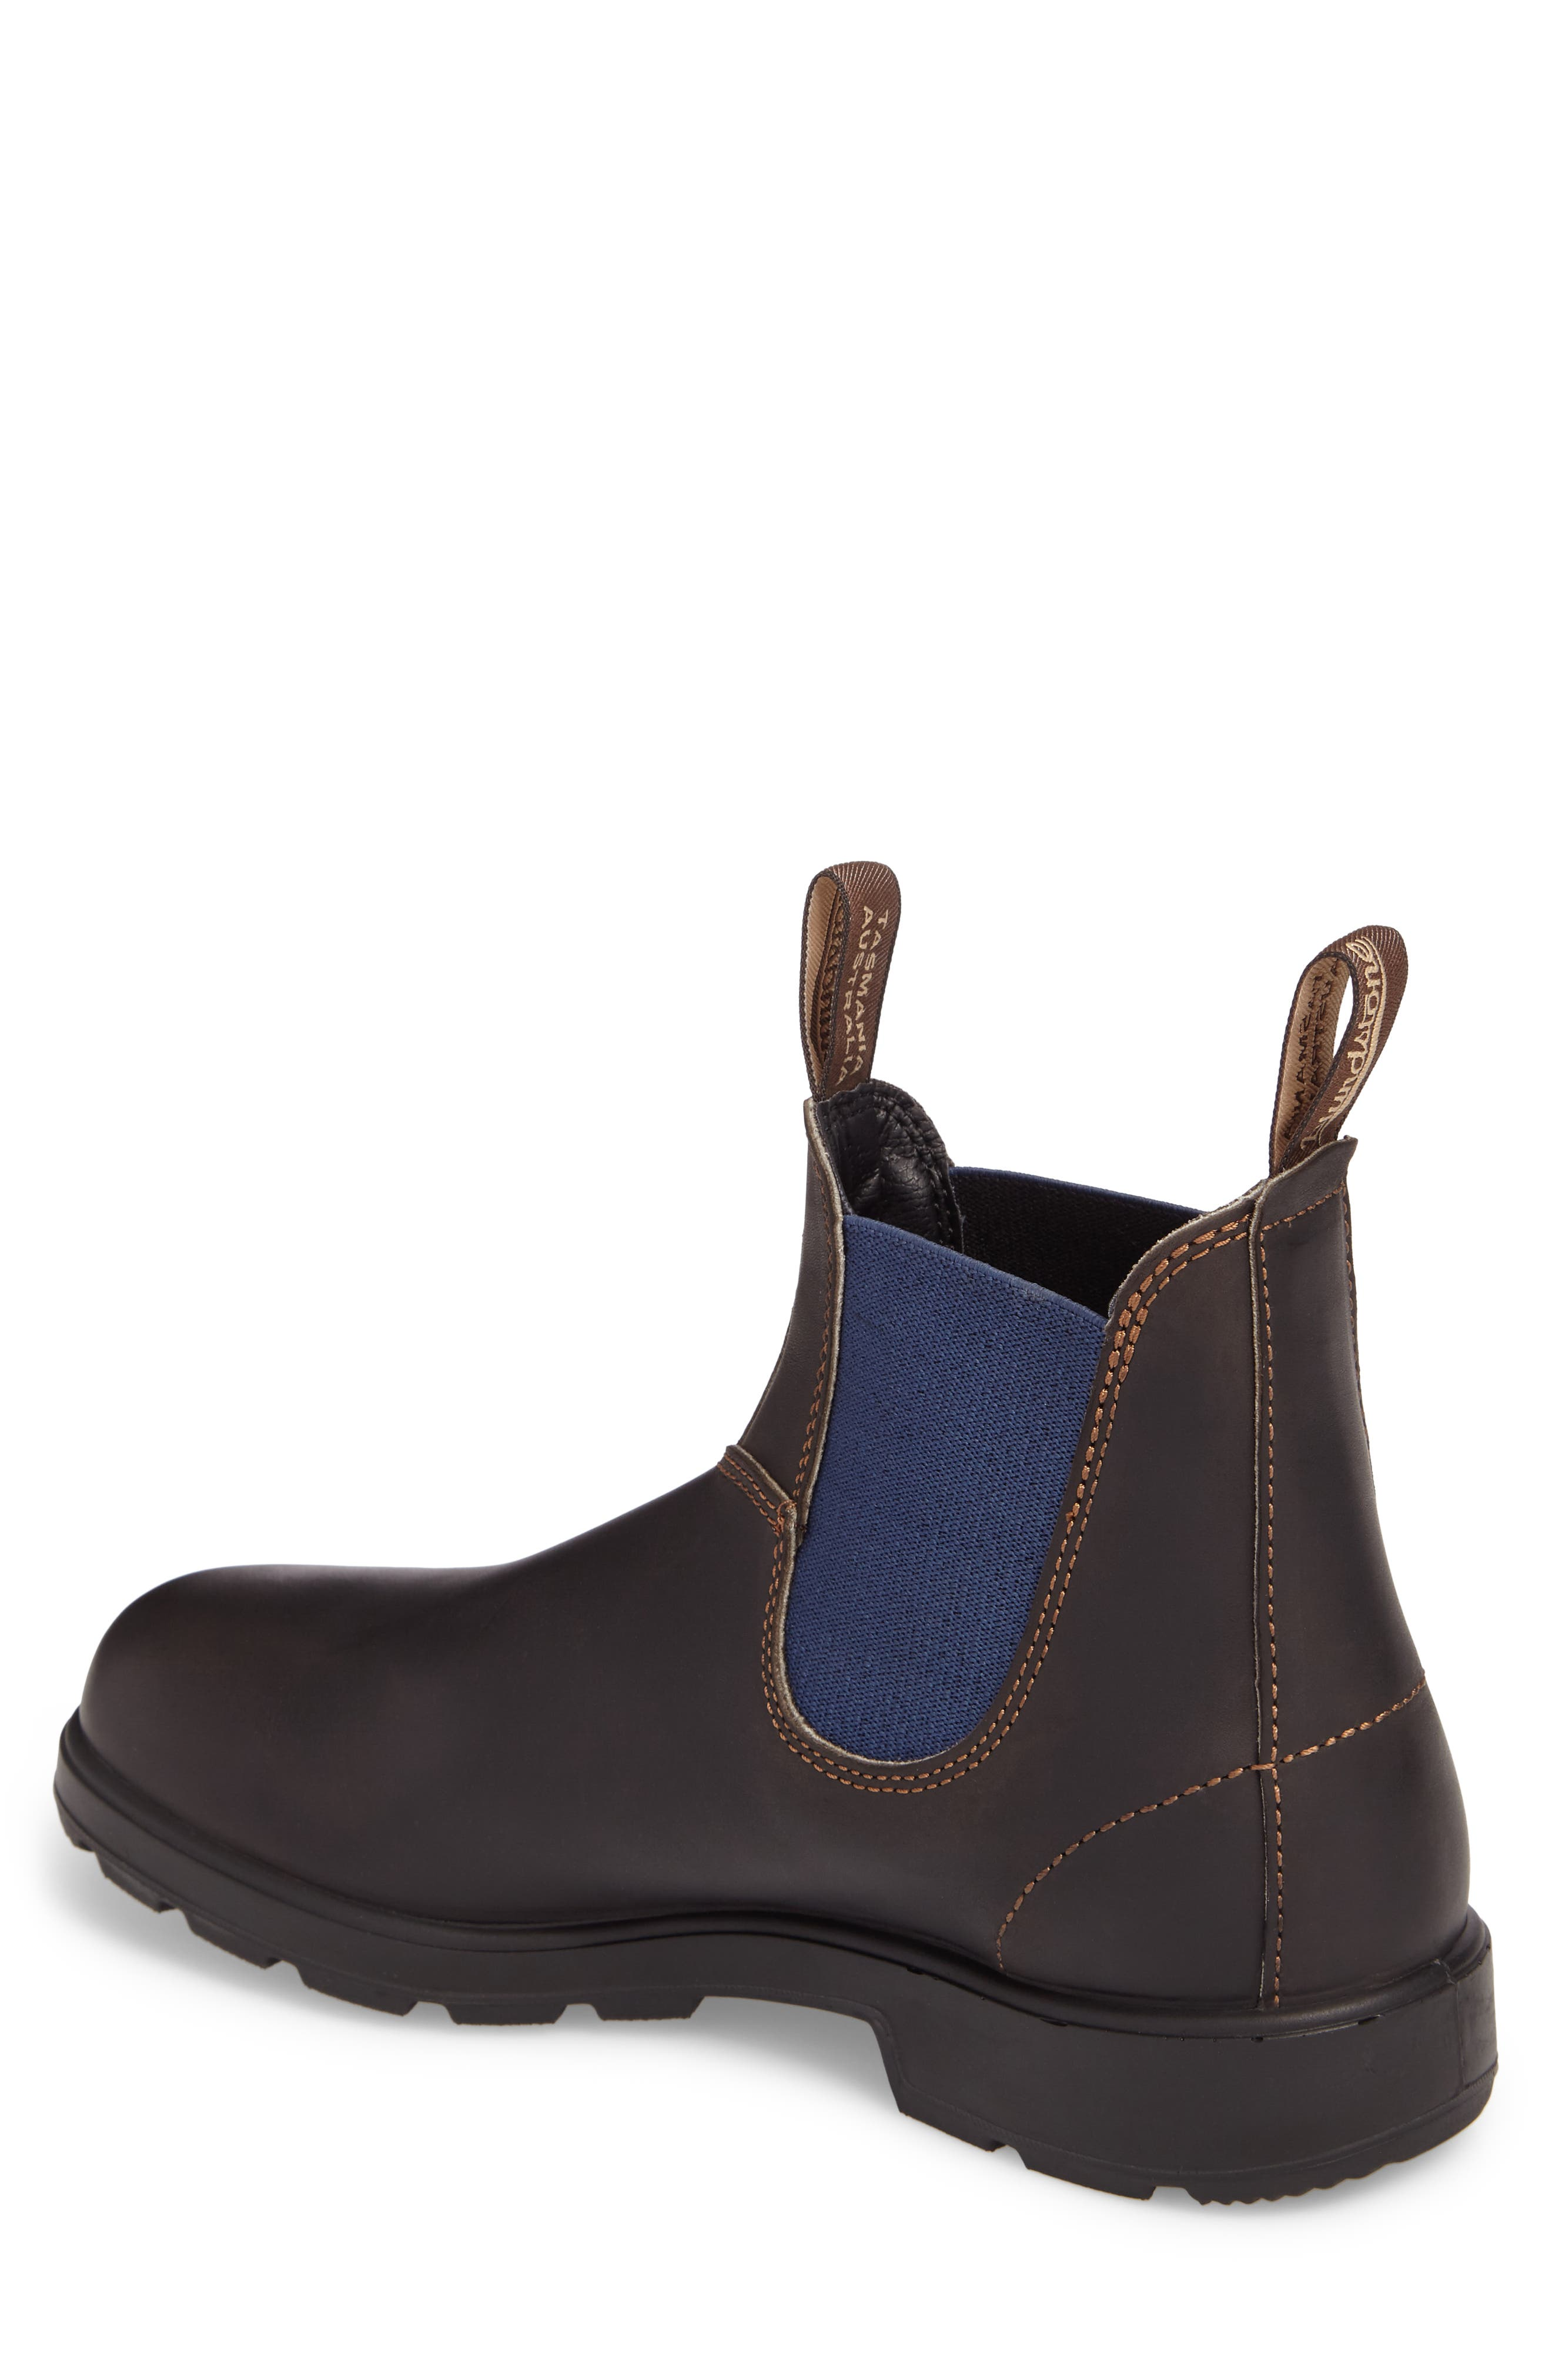 Chelsea Boot,                             Alternate thumbnail 2, color,                             BROWN/ BLUE LEATHER